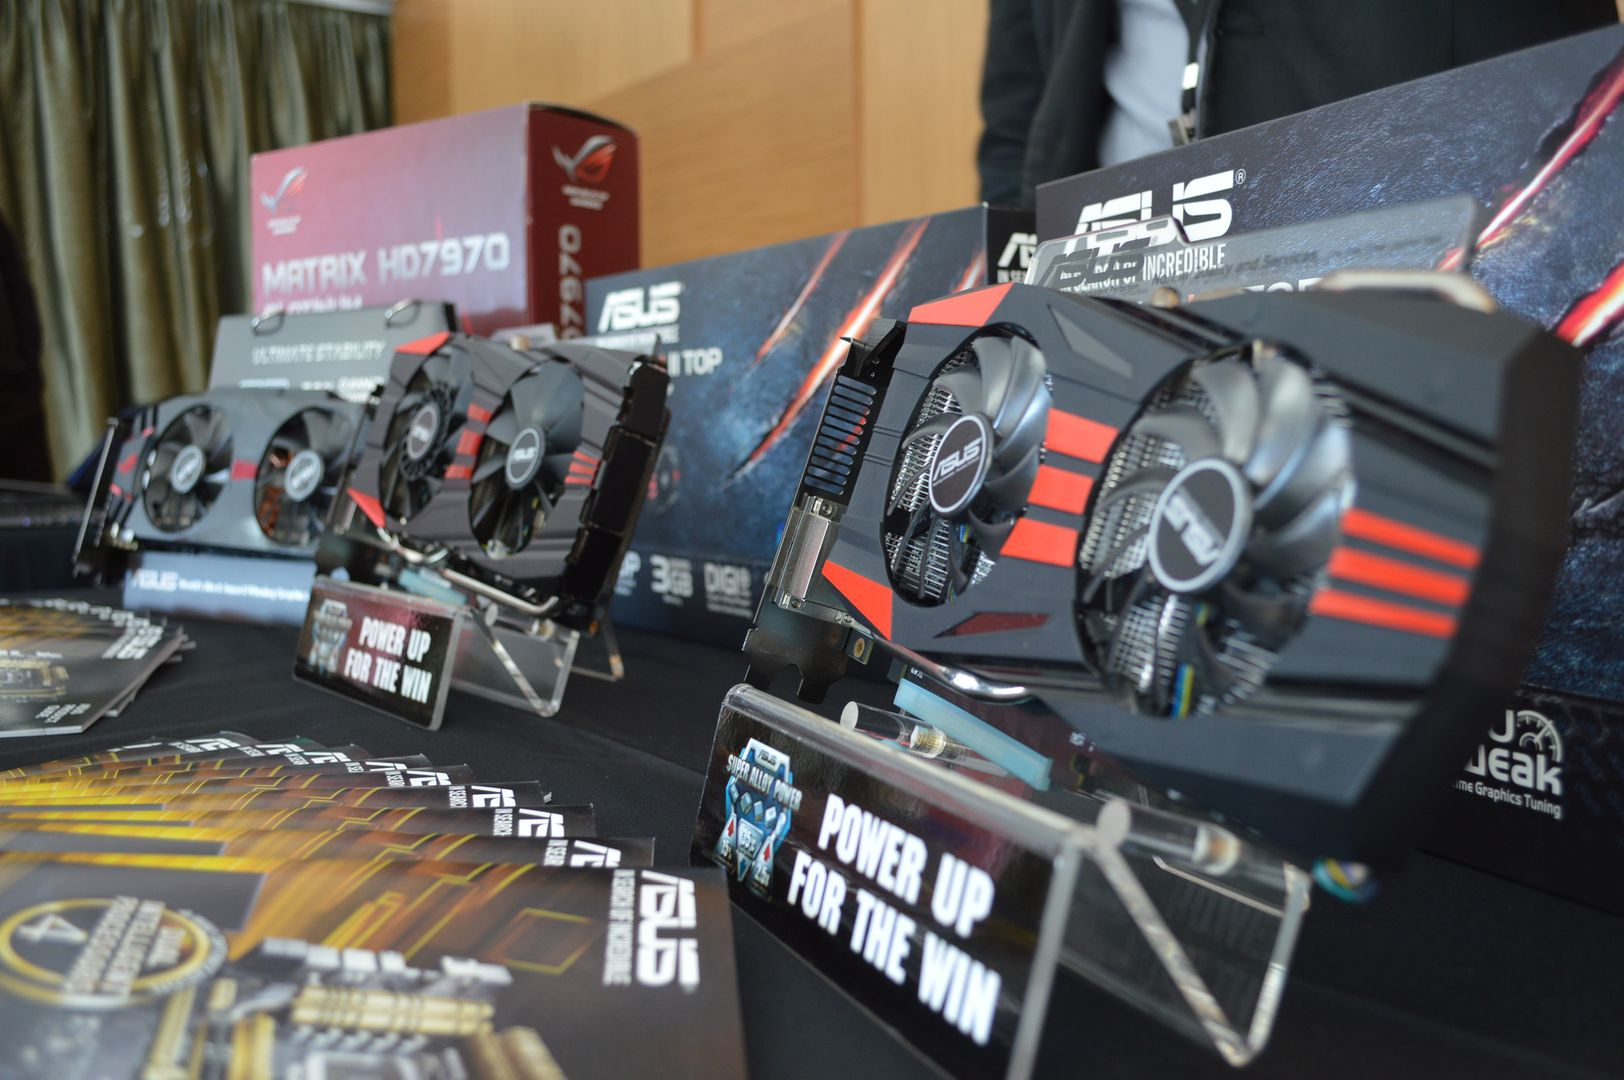 ASUS, HIS, MSI, Sapphire, PowerColor and Gigabyte R9 200 lineups